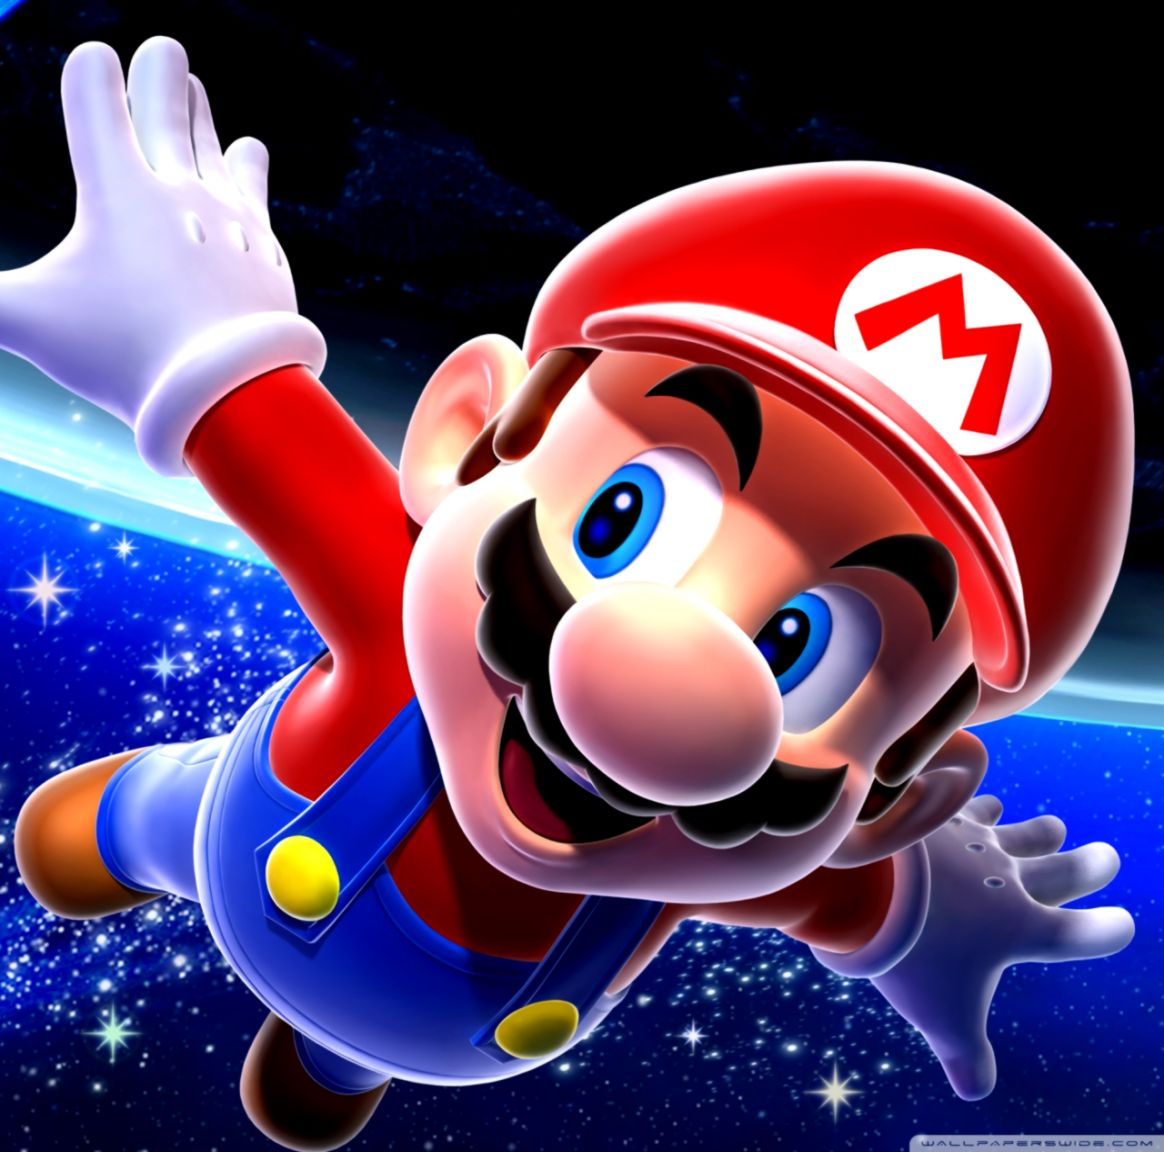 Super Mario Android Wallpaper | View Wallpapers